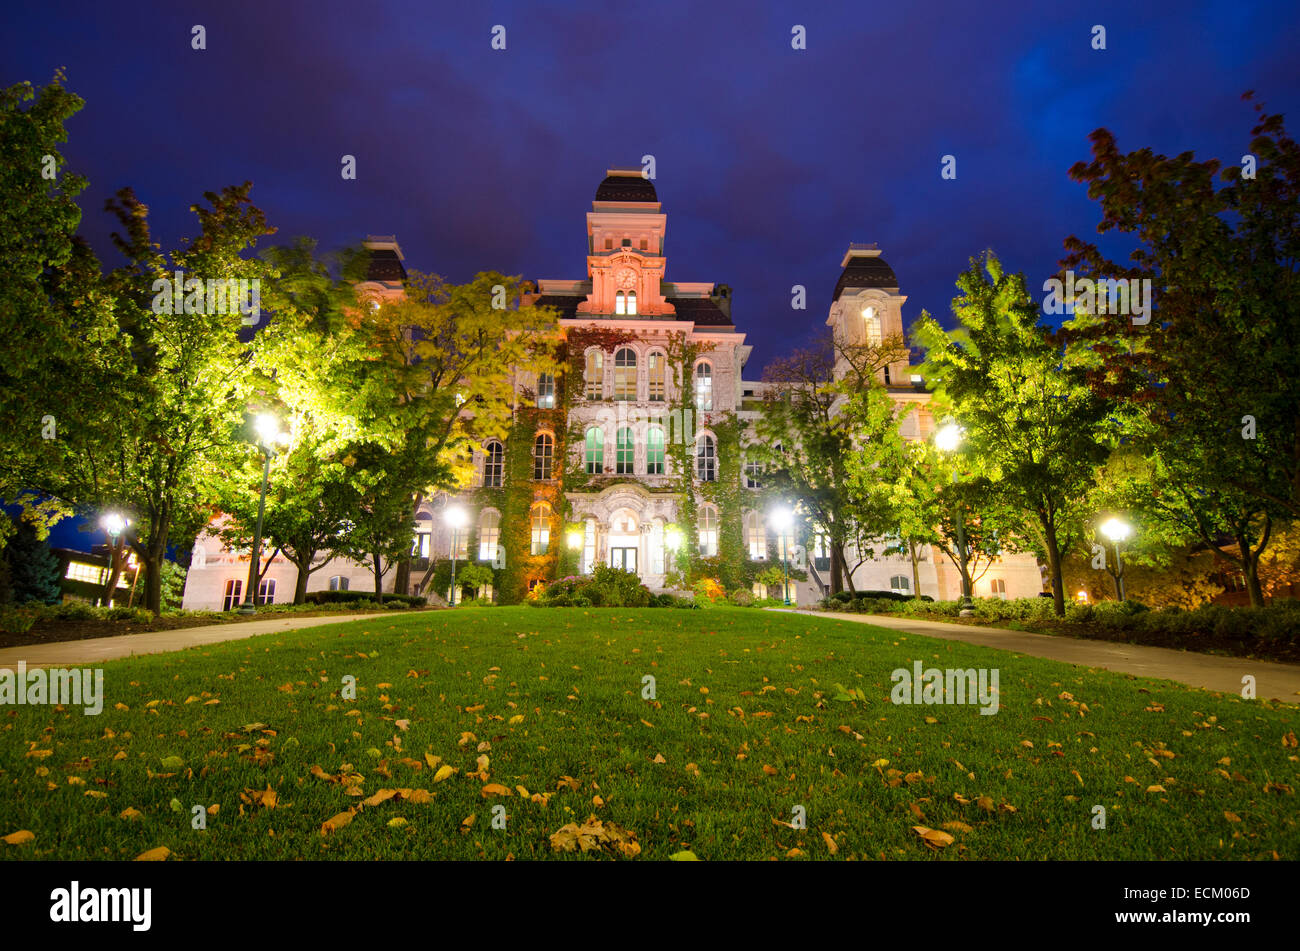 A forceful gust sweeps summer leaves off shedding trees, introducing autumn to the Syracuse University campus. - Stock Image